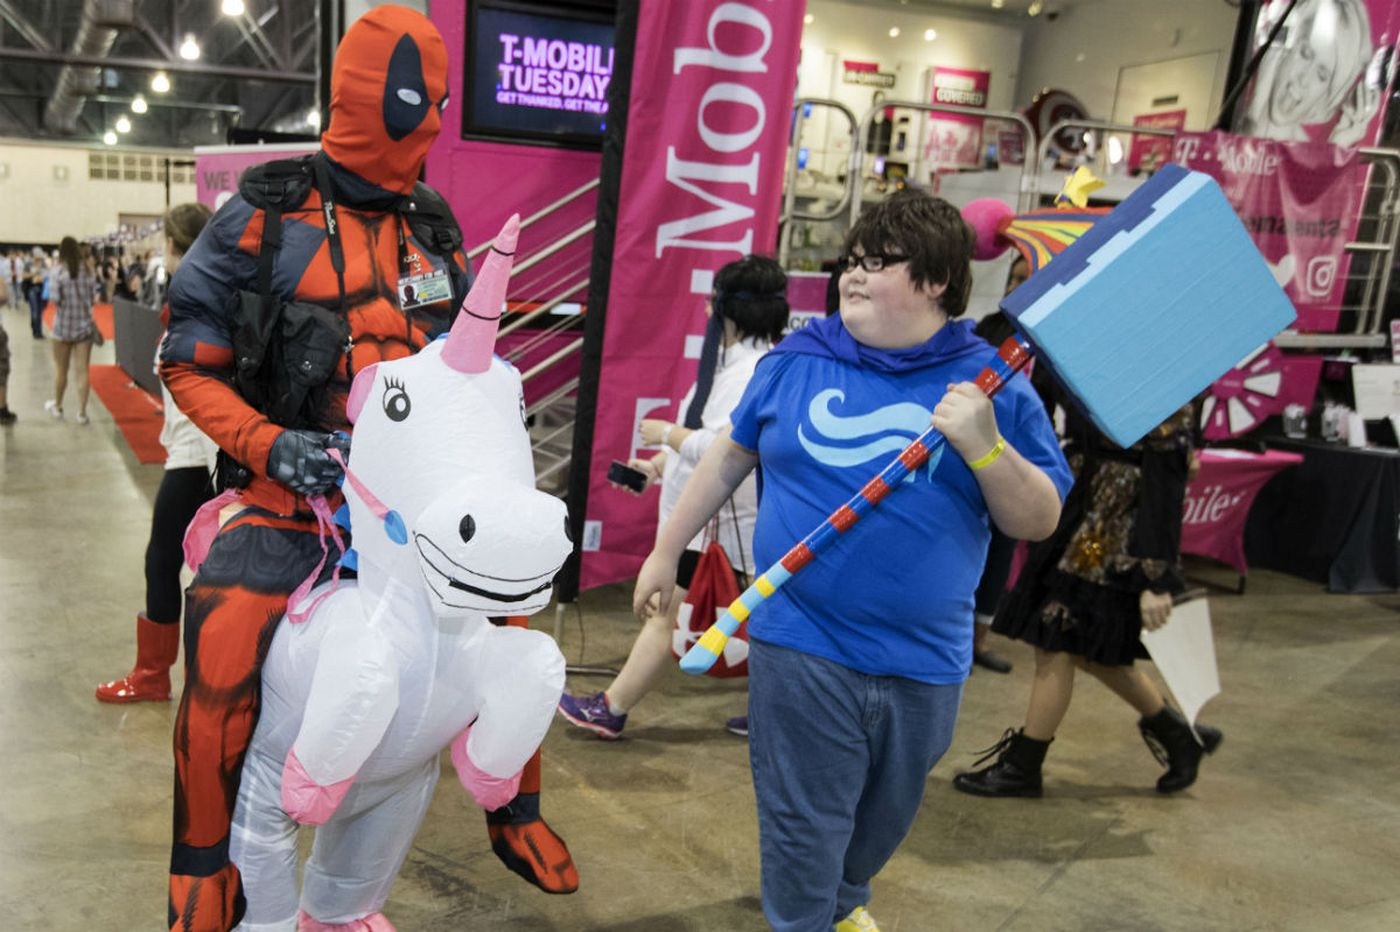 All swords of fun as the geek universe descends on Wizard World Philly